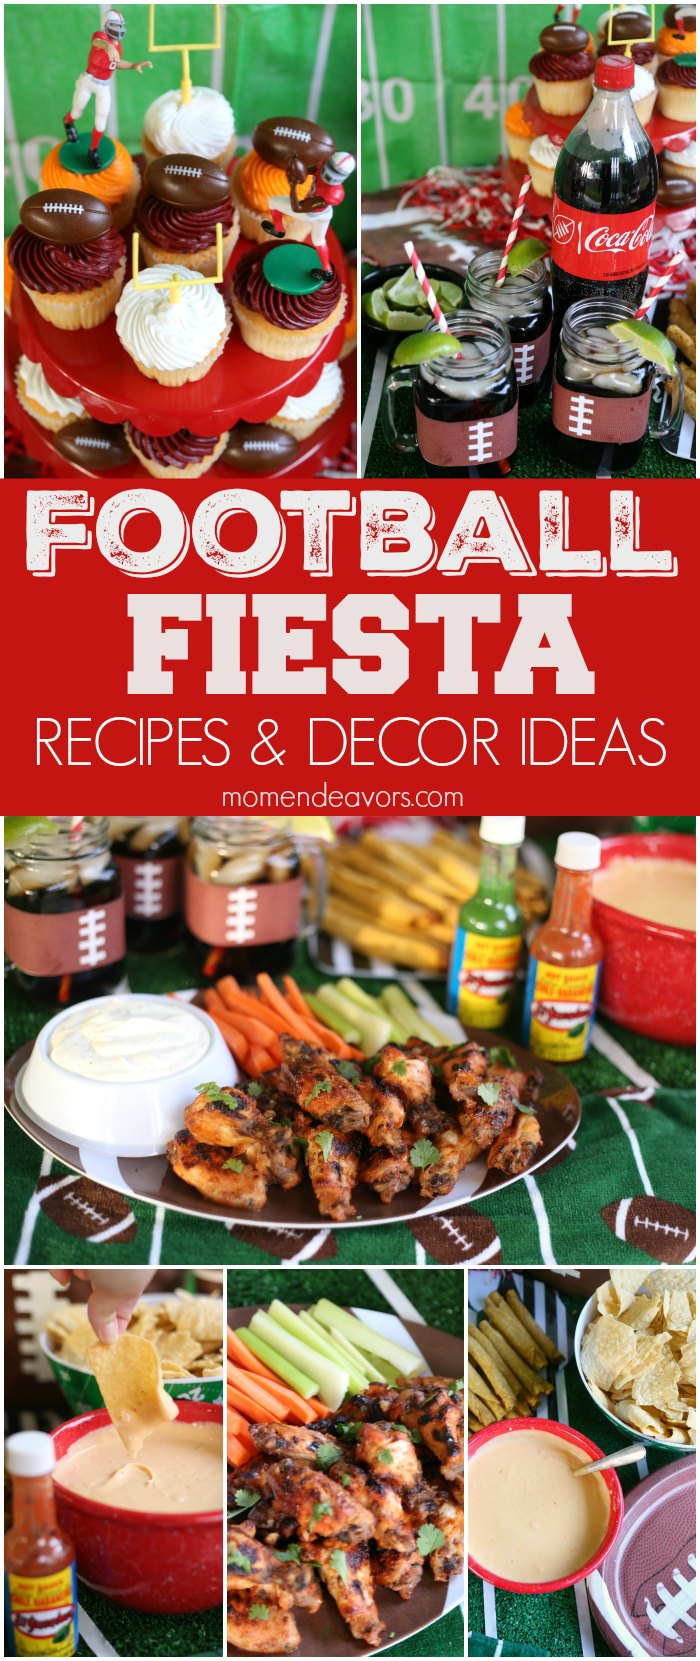 Football Party Recipes & Decor Ideas